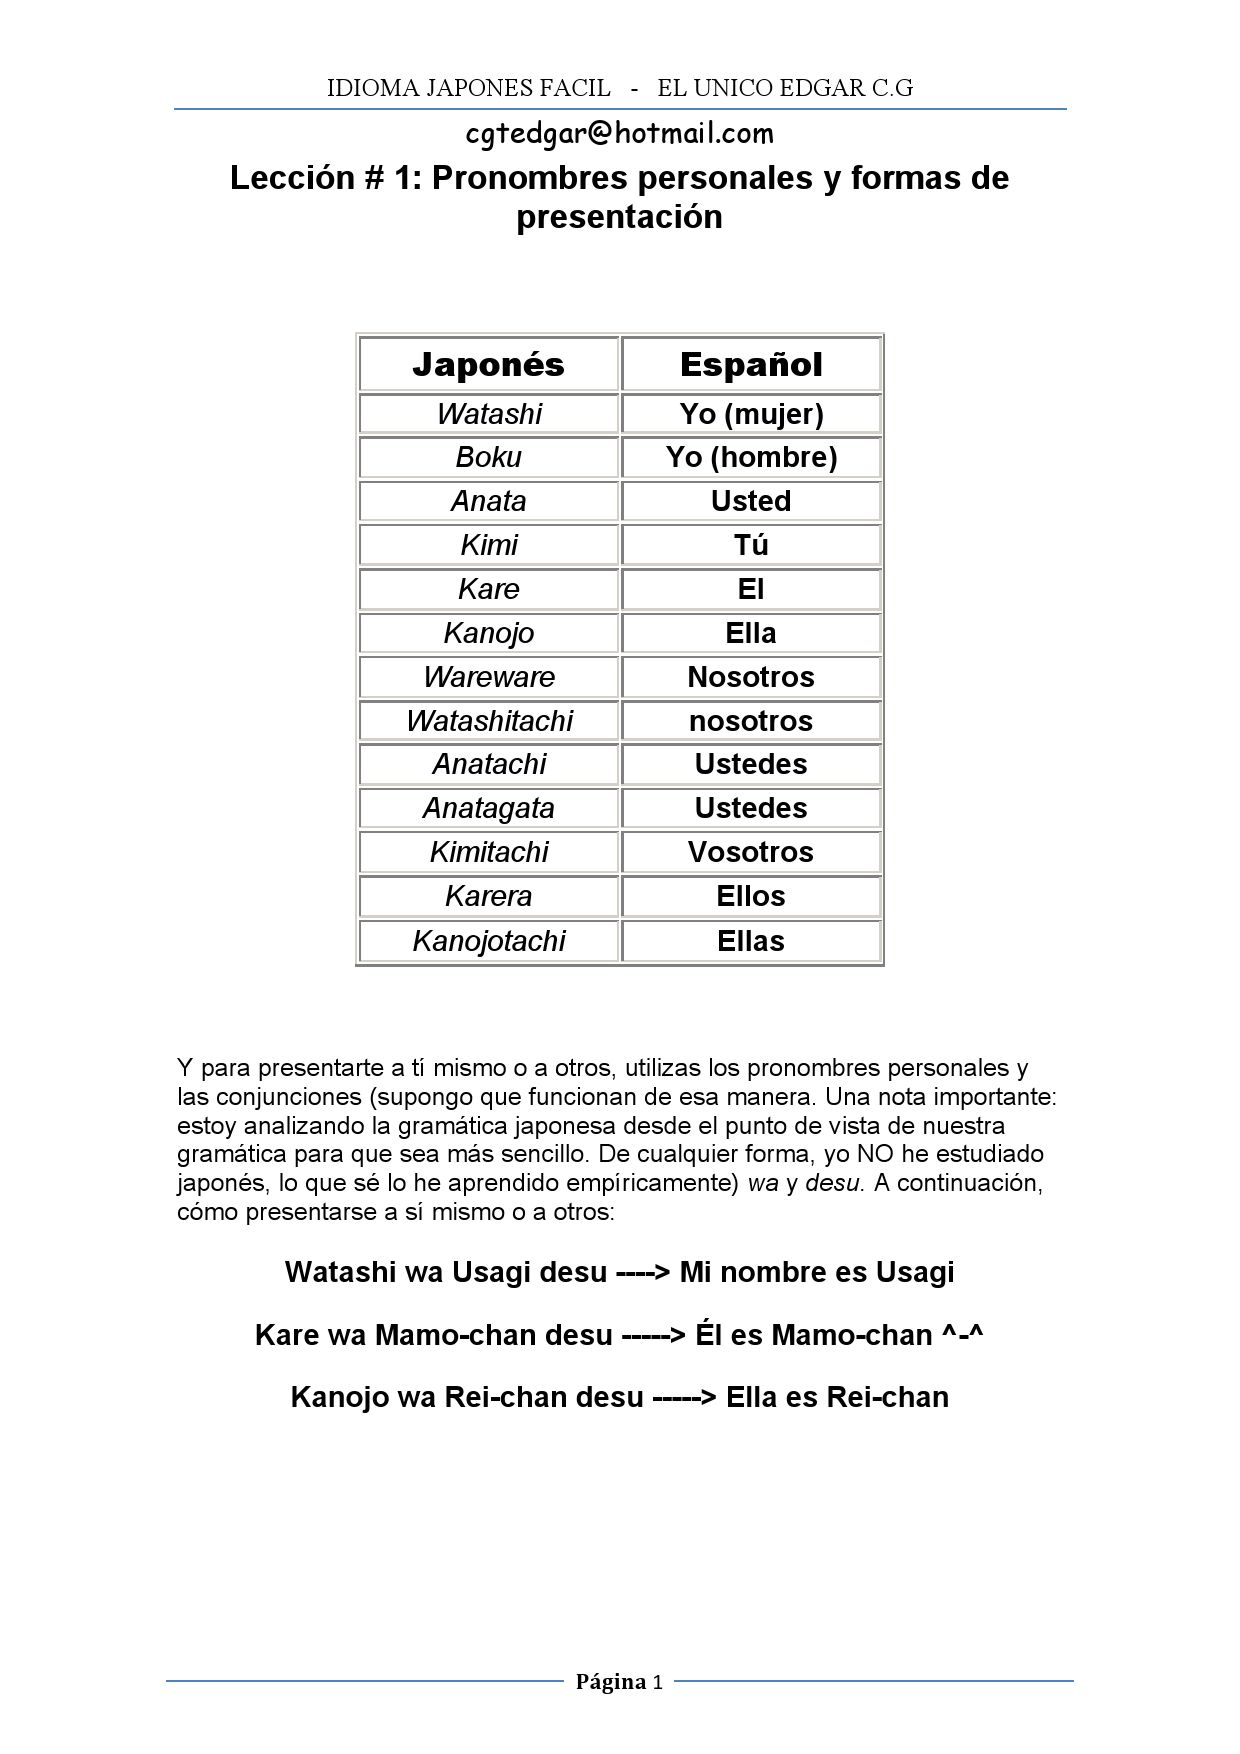 Idioma Japones Facil by cgtedgar - issuu